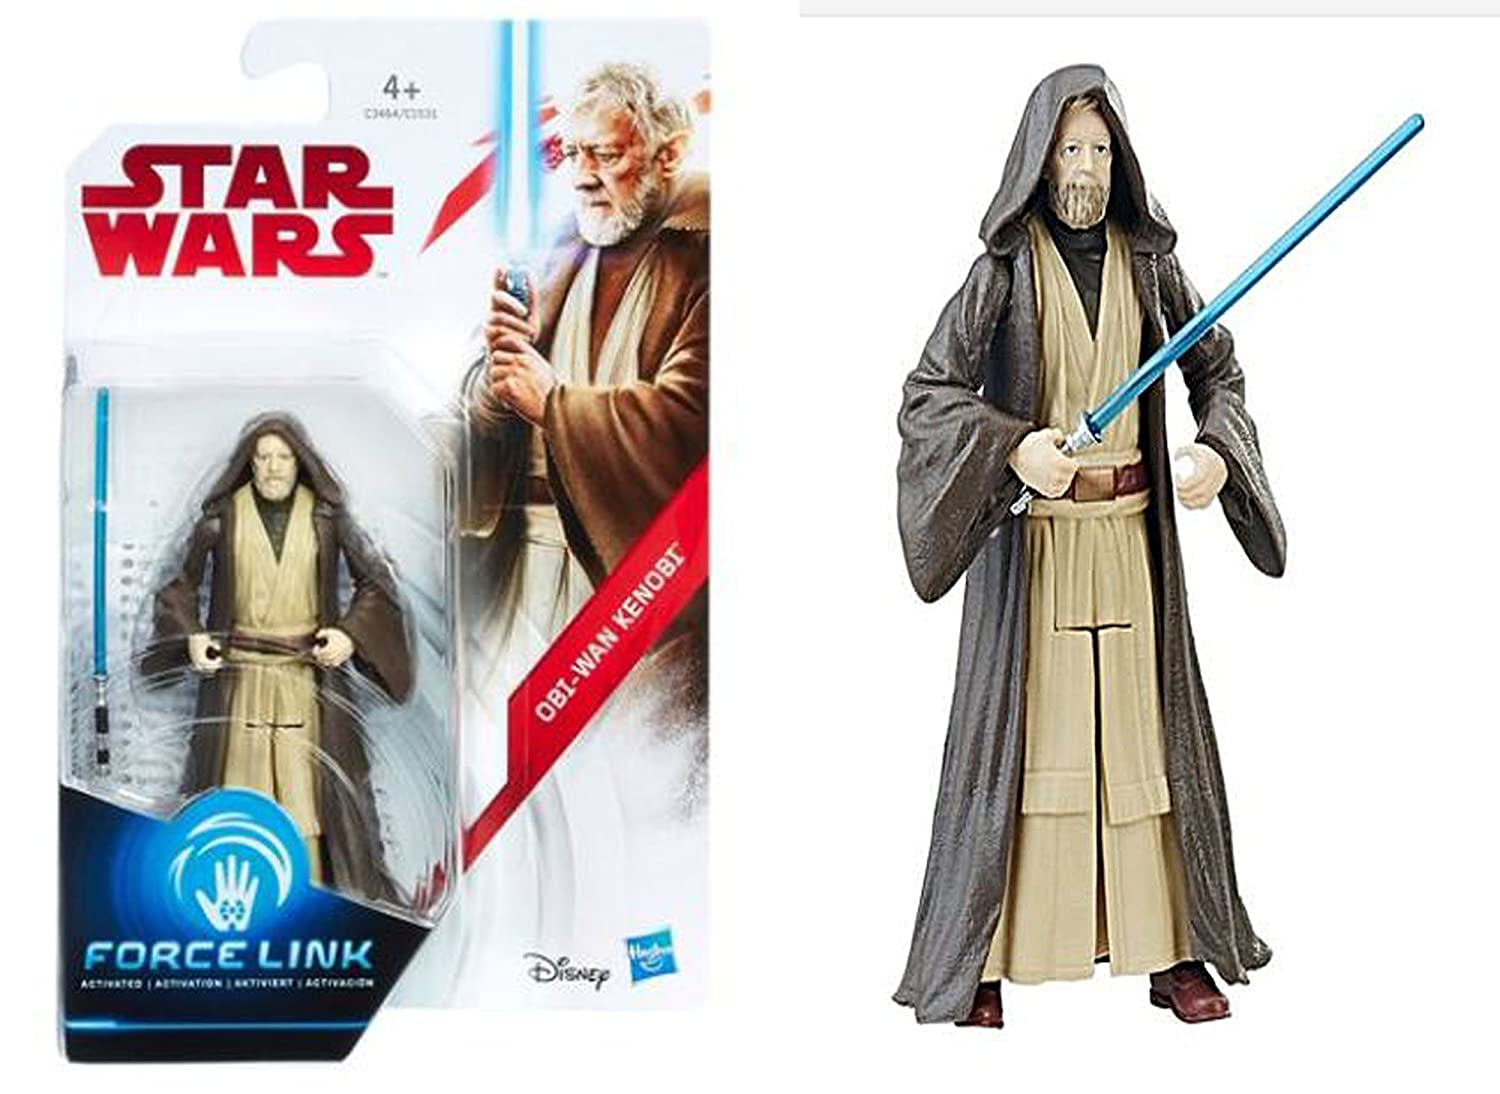 Meuble Salle De Bain Obi ~ obi wan kenobi star wars force link action figure amazon fr jeux